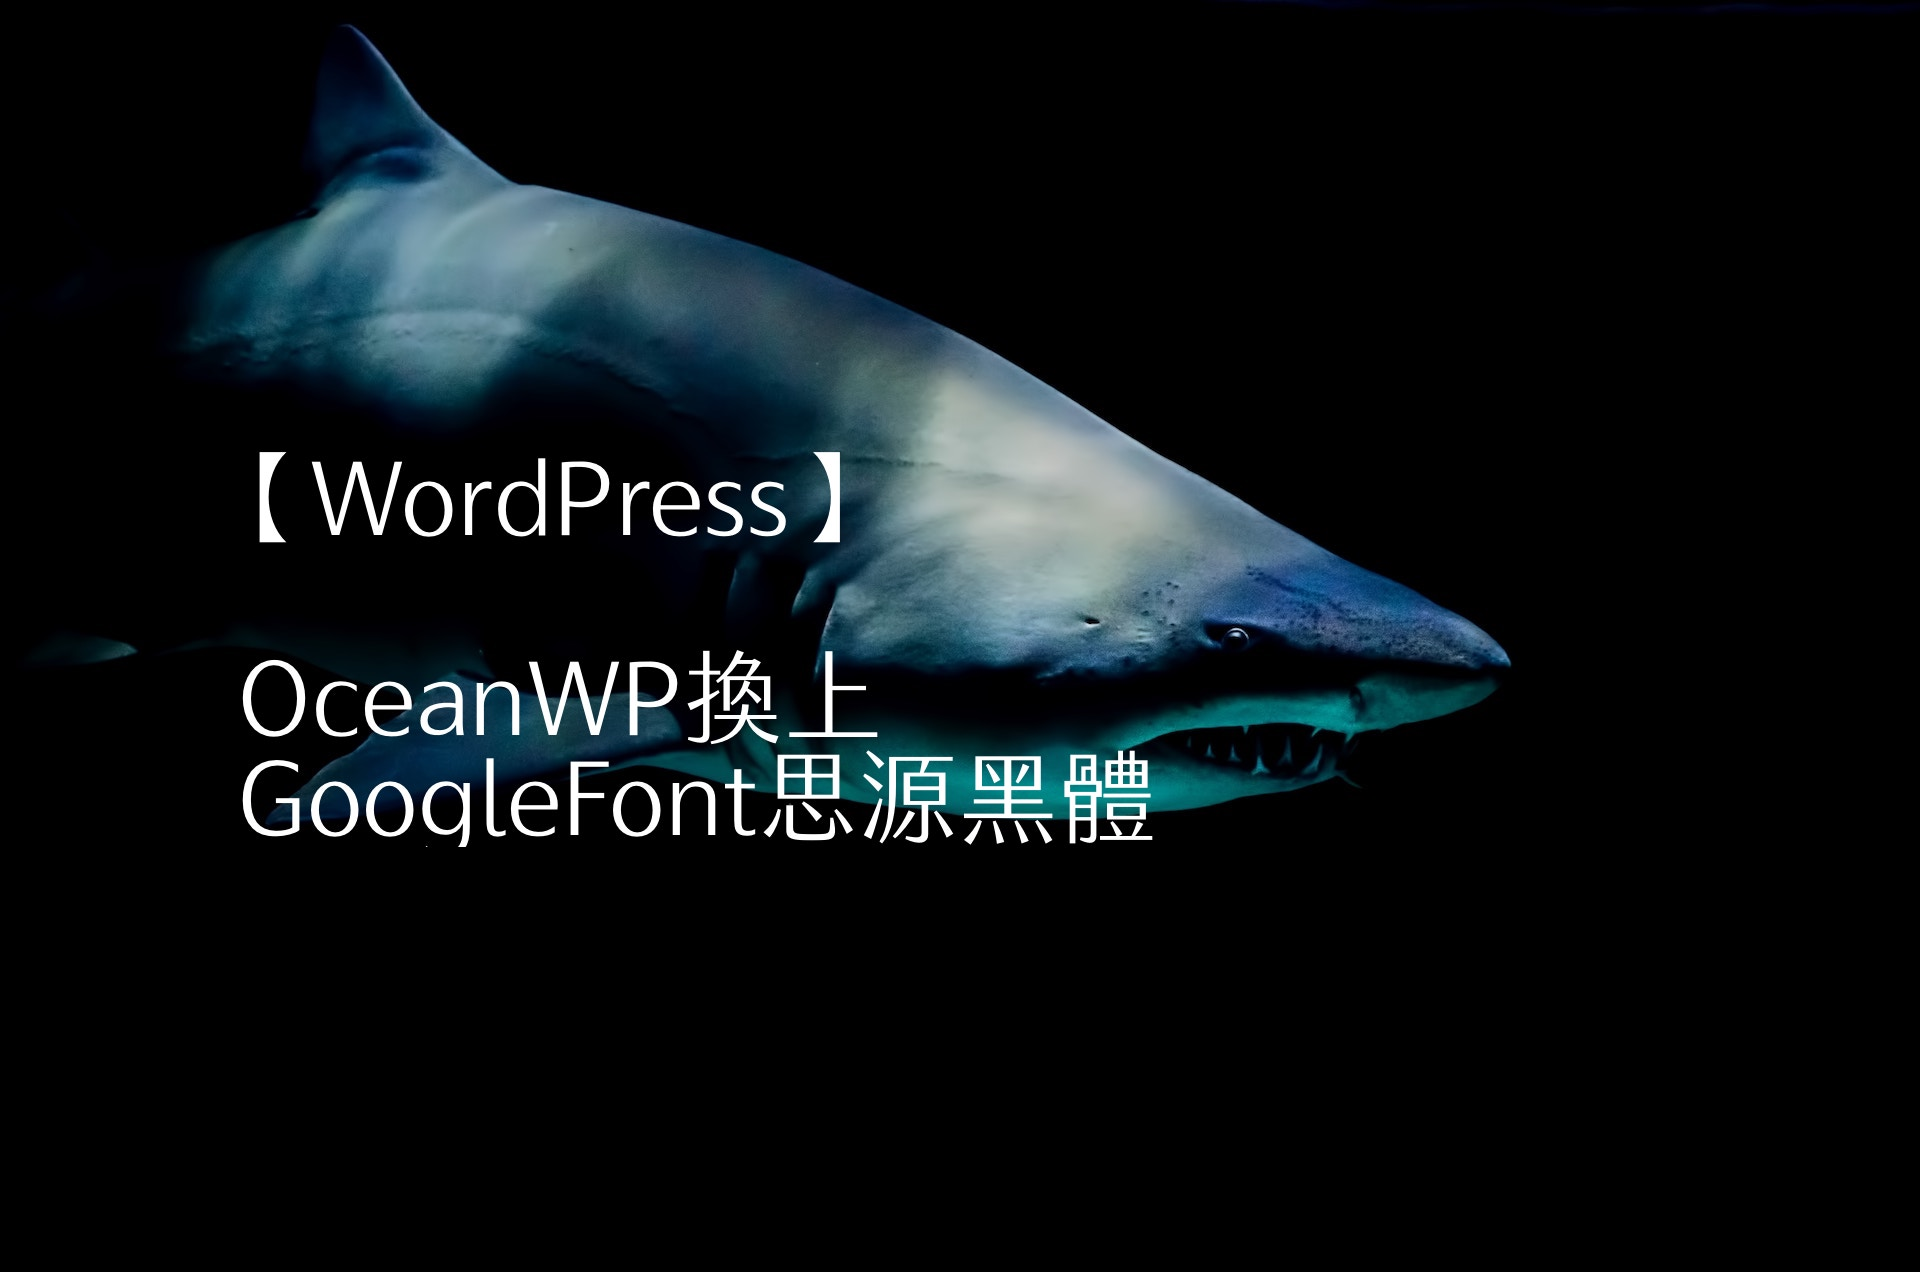 【WordPress】OceanWP換上GoogleFont思源黑體 1